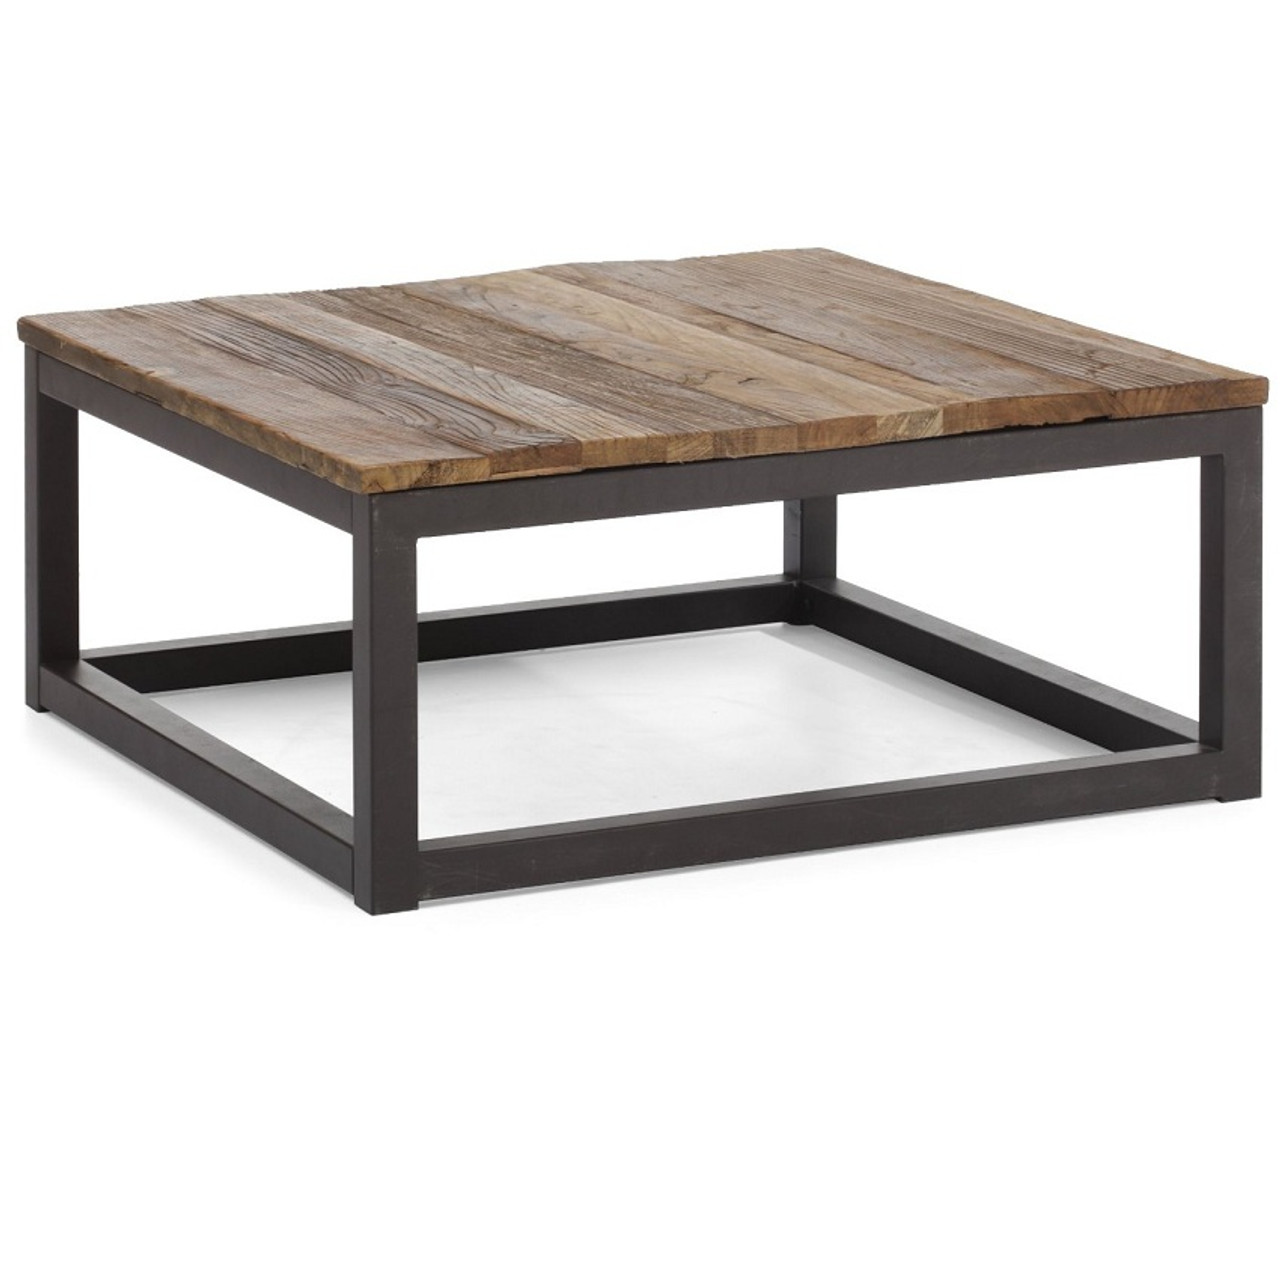 Fine Civic Wood And Metal Square Coffee Table Lamtechconsult Wood Chair Design Ideas Lamtechconsultcom